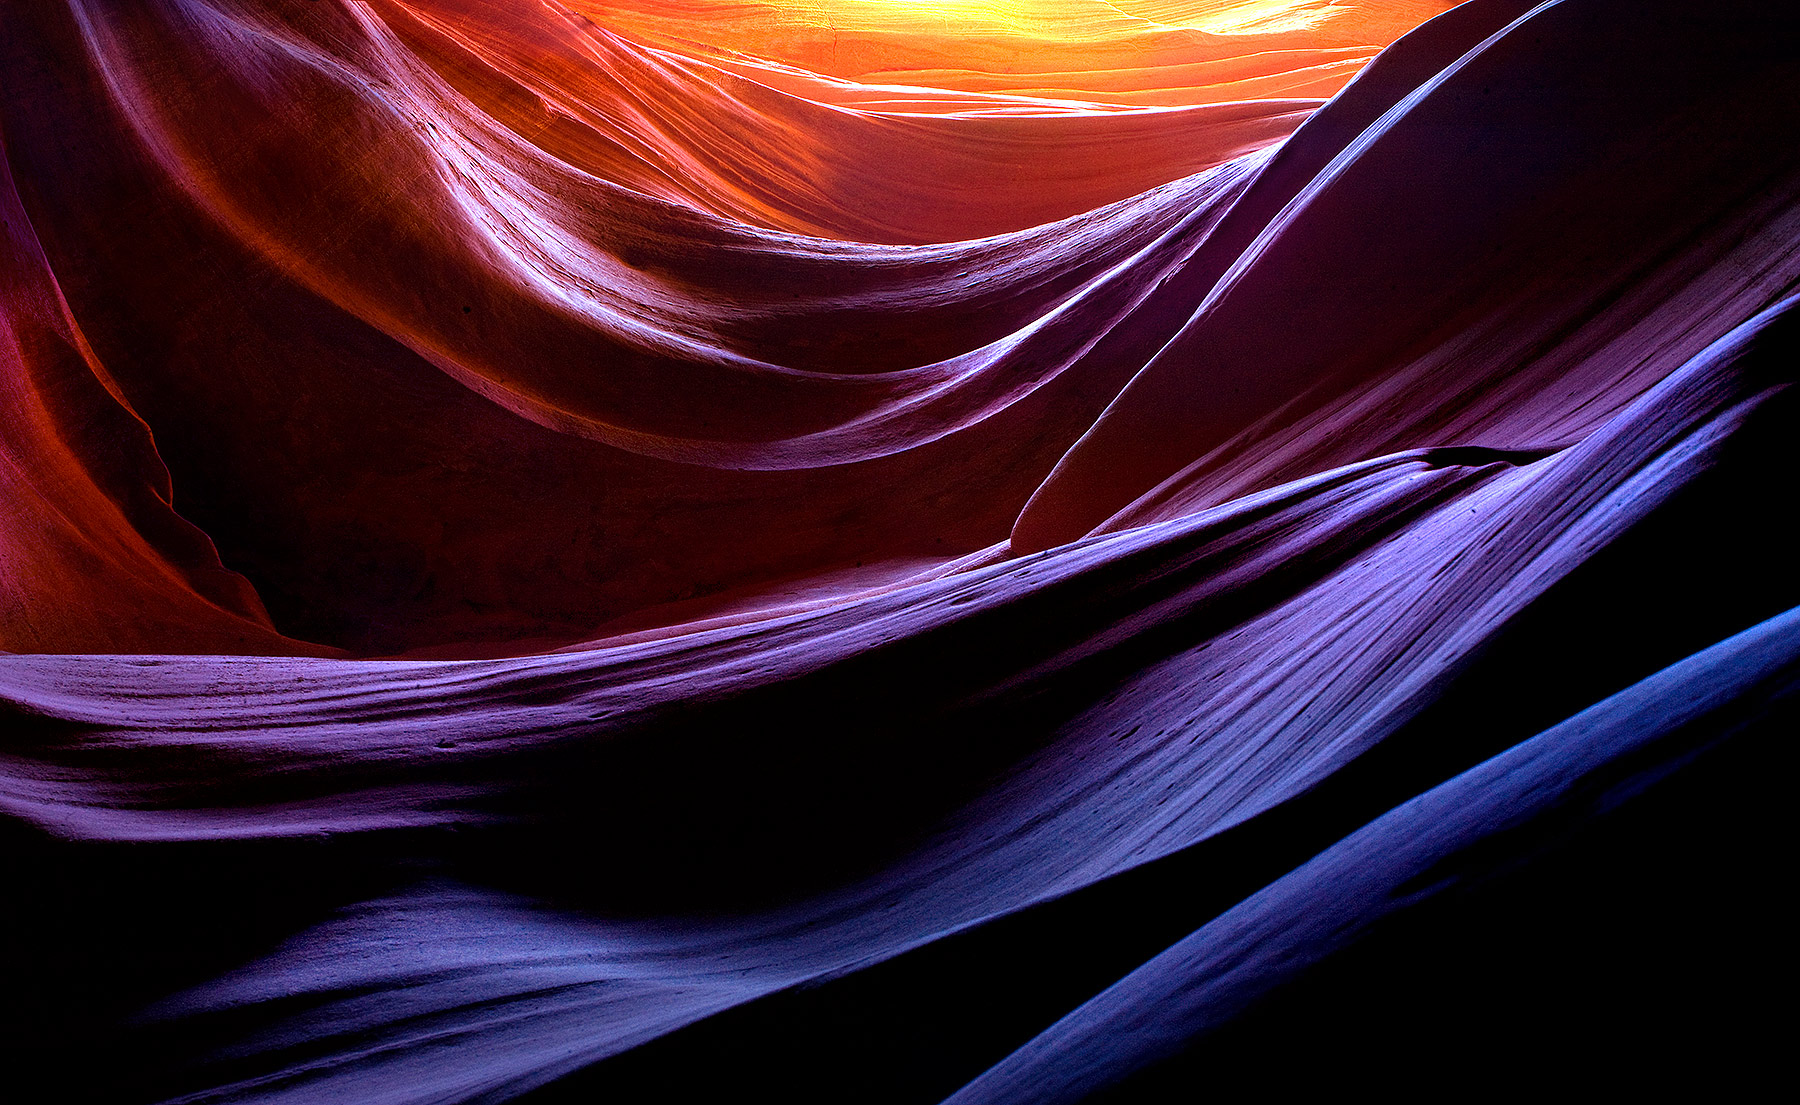 Looking up from the depths of a hundred-foot deep slot canyon at layers of sandstone. The various rich colors and hues present...